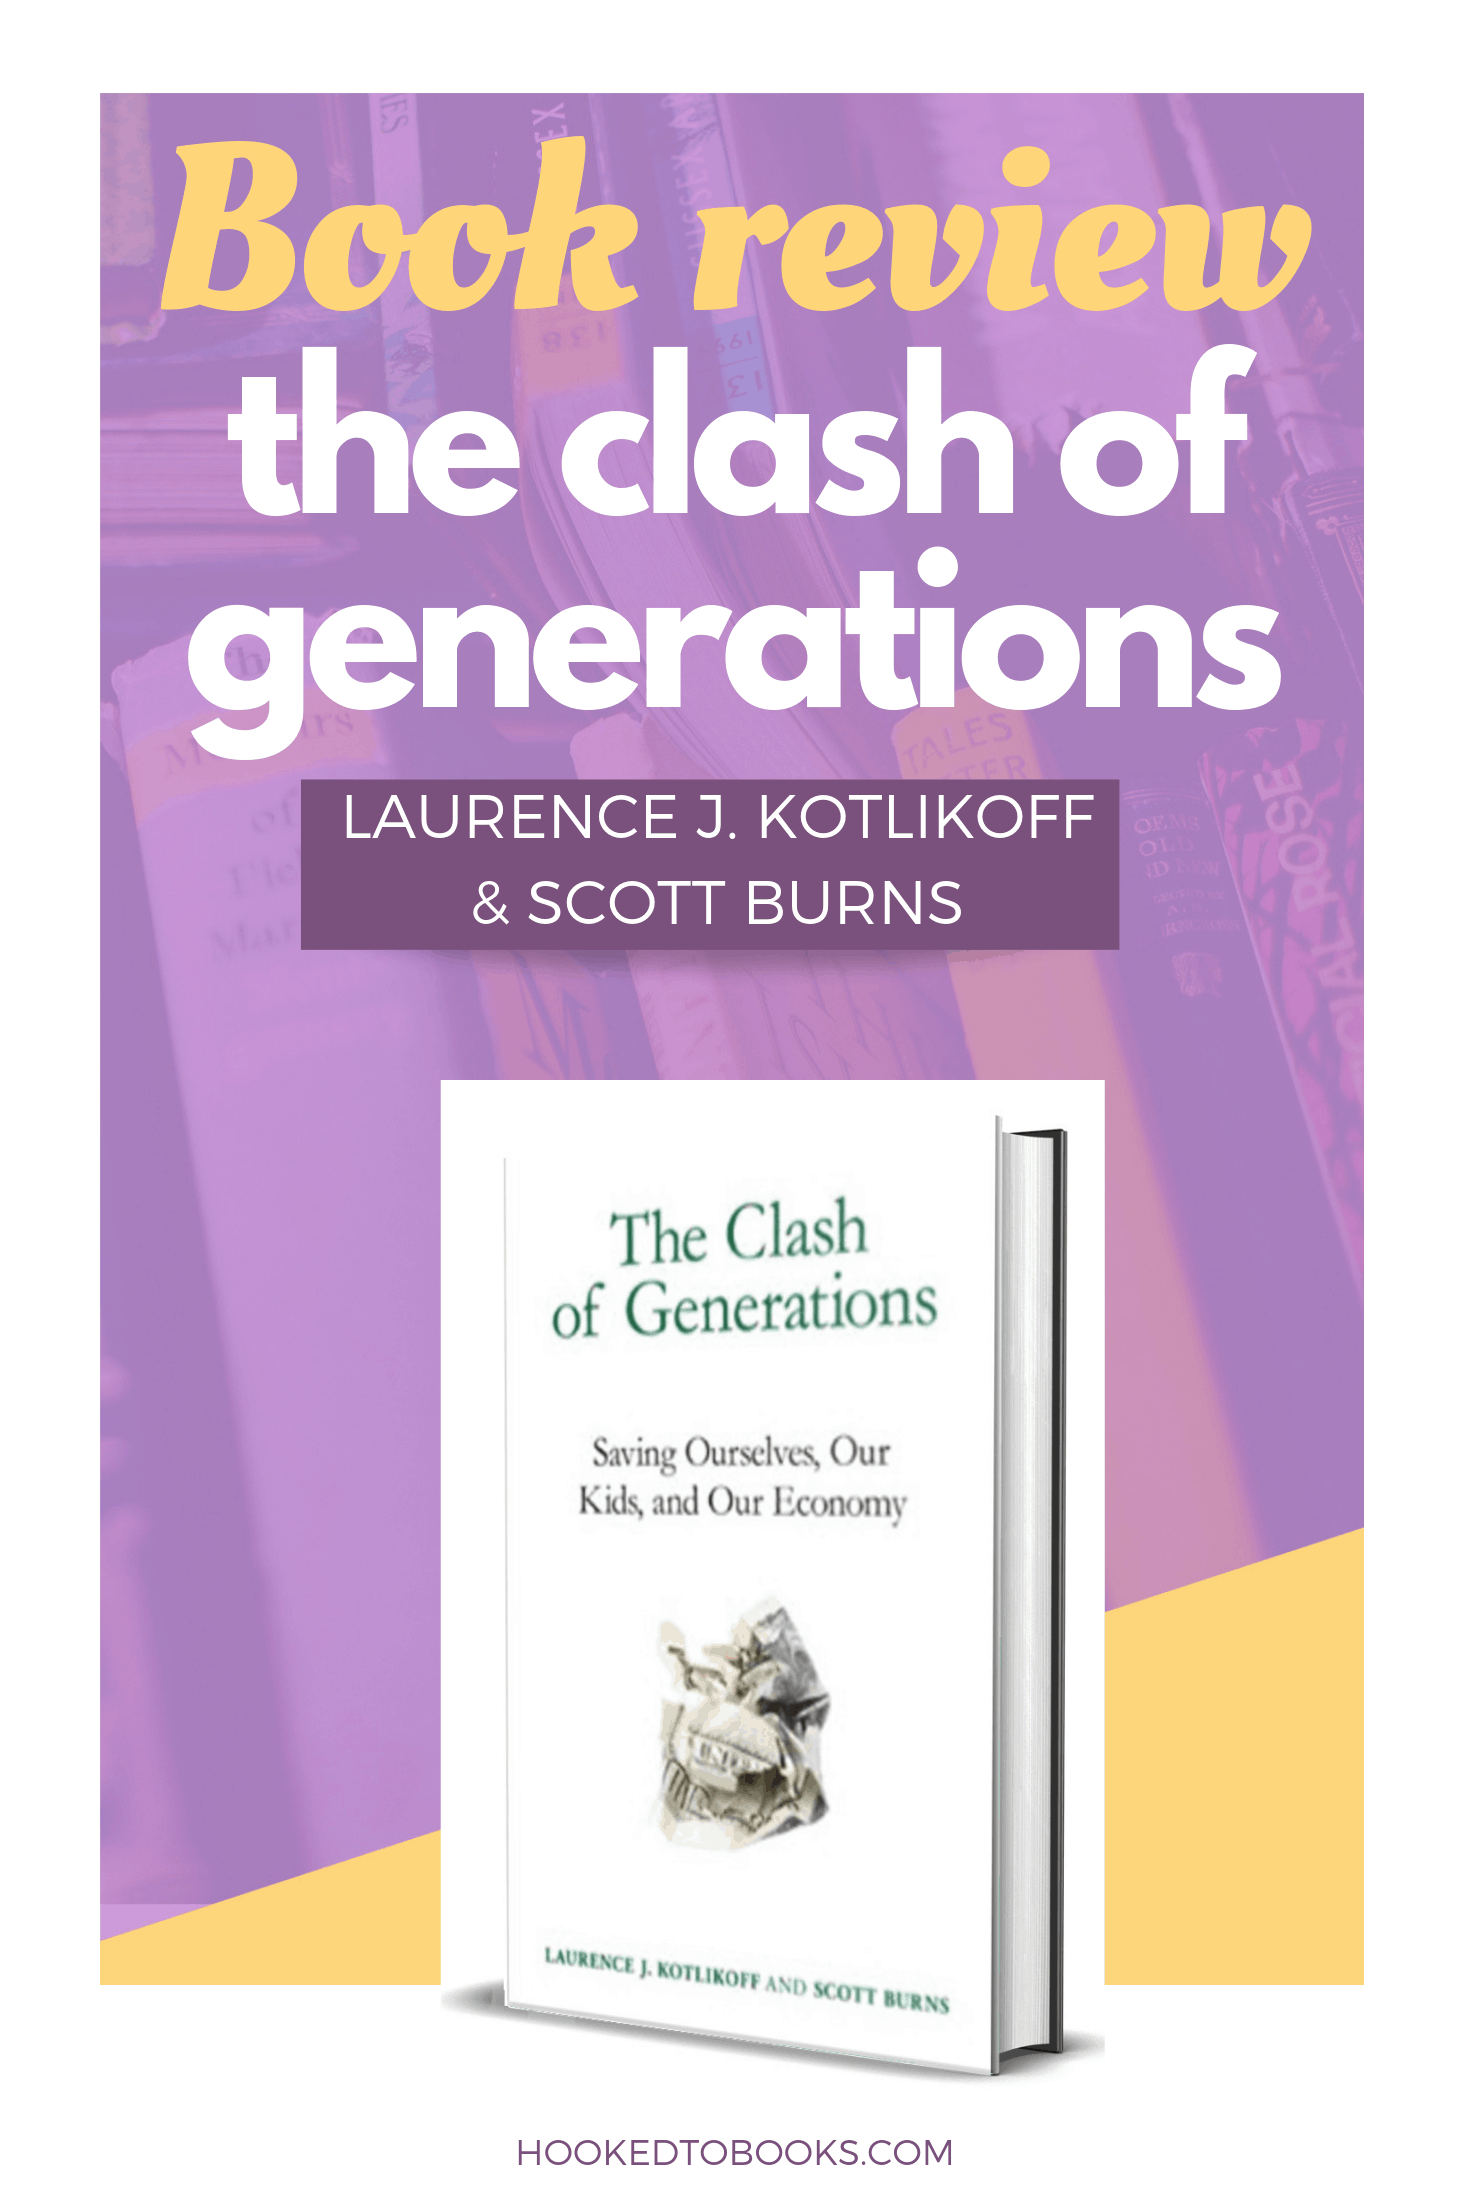 Book Review of The Clash of Generations: Saving Ourselves, Our Kids and Our Economy By Laurence J. Kotlikoff and Scott Burns